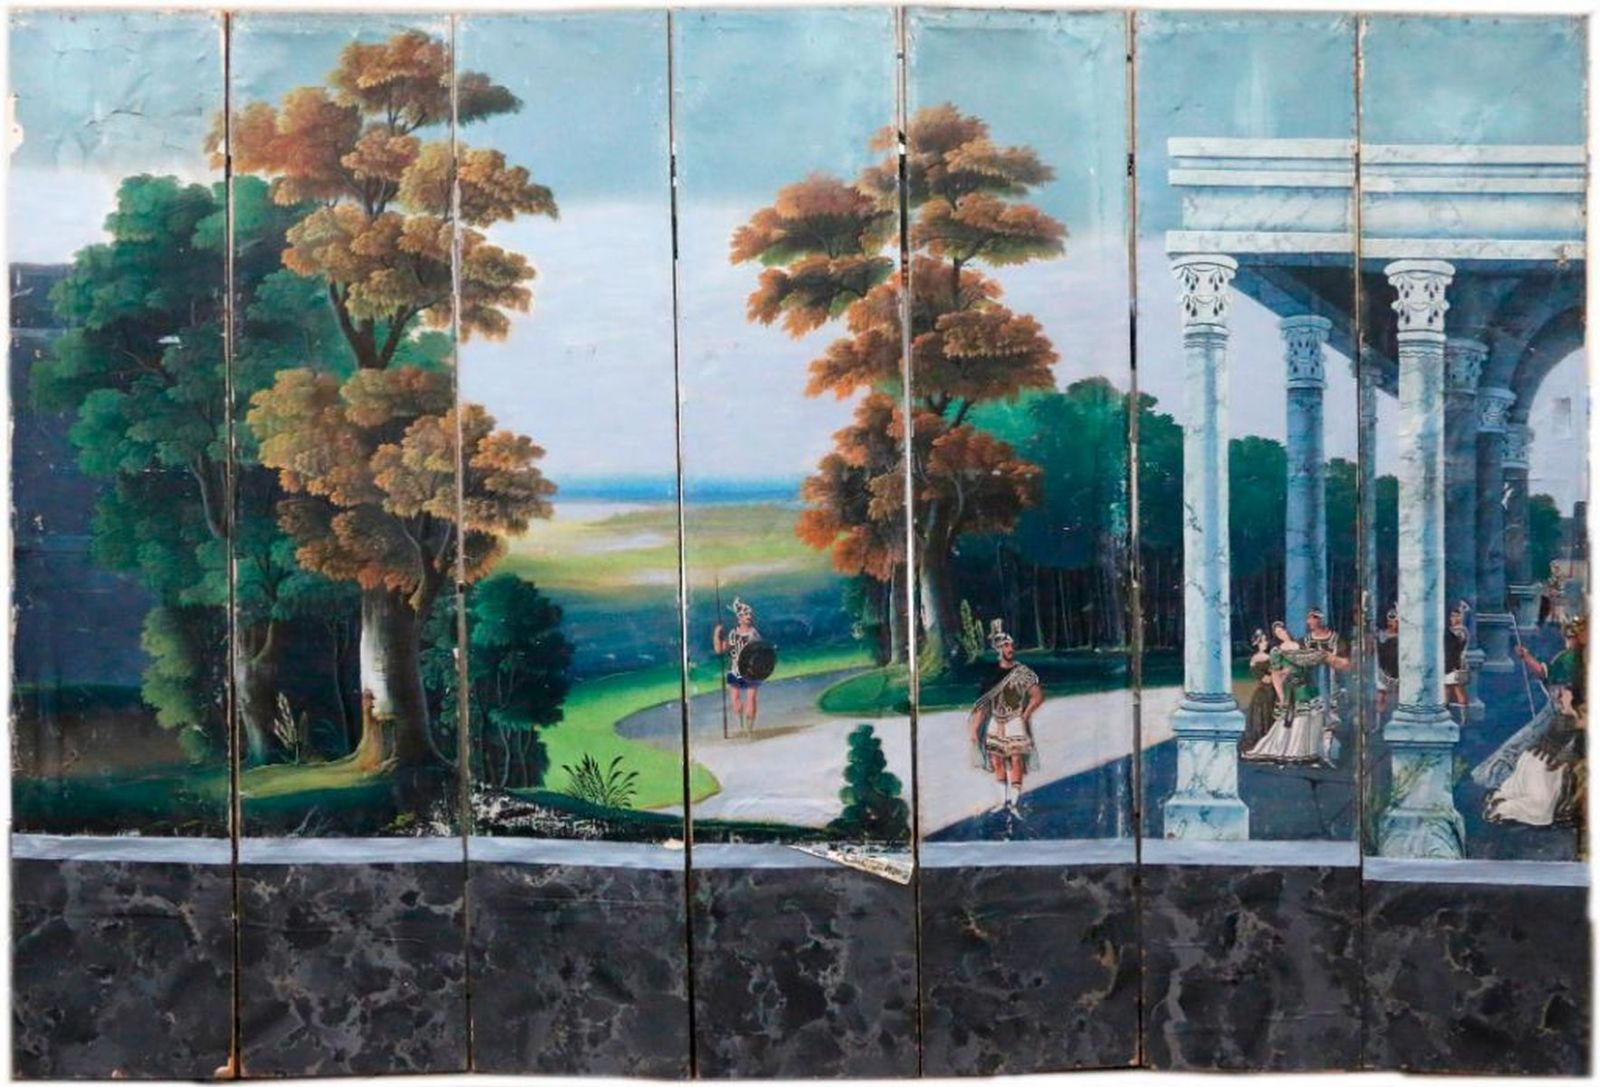 Lot 73: A late 18th/early19th century continental paper seven panel landscape screen. Estimate $1,500-$2,500